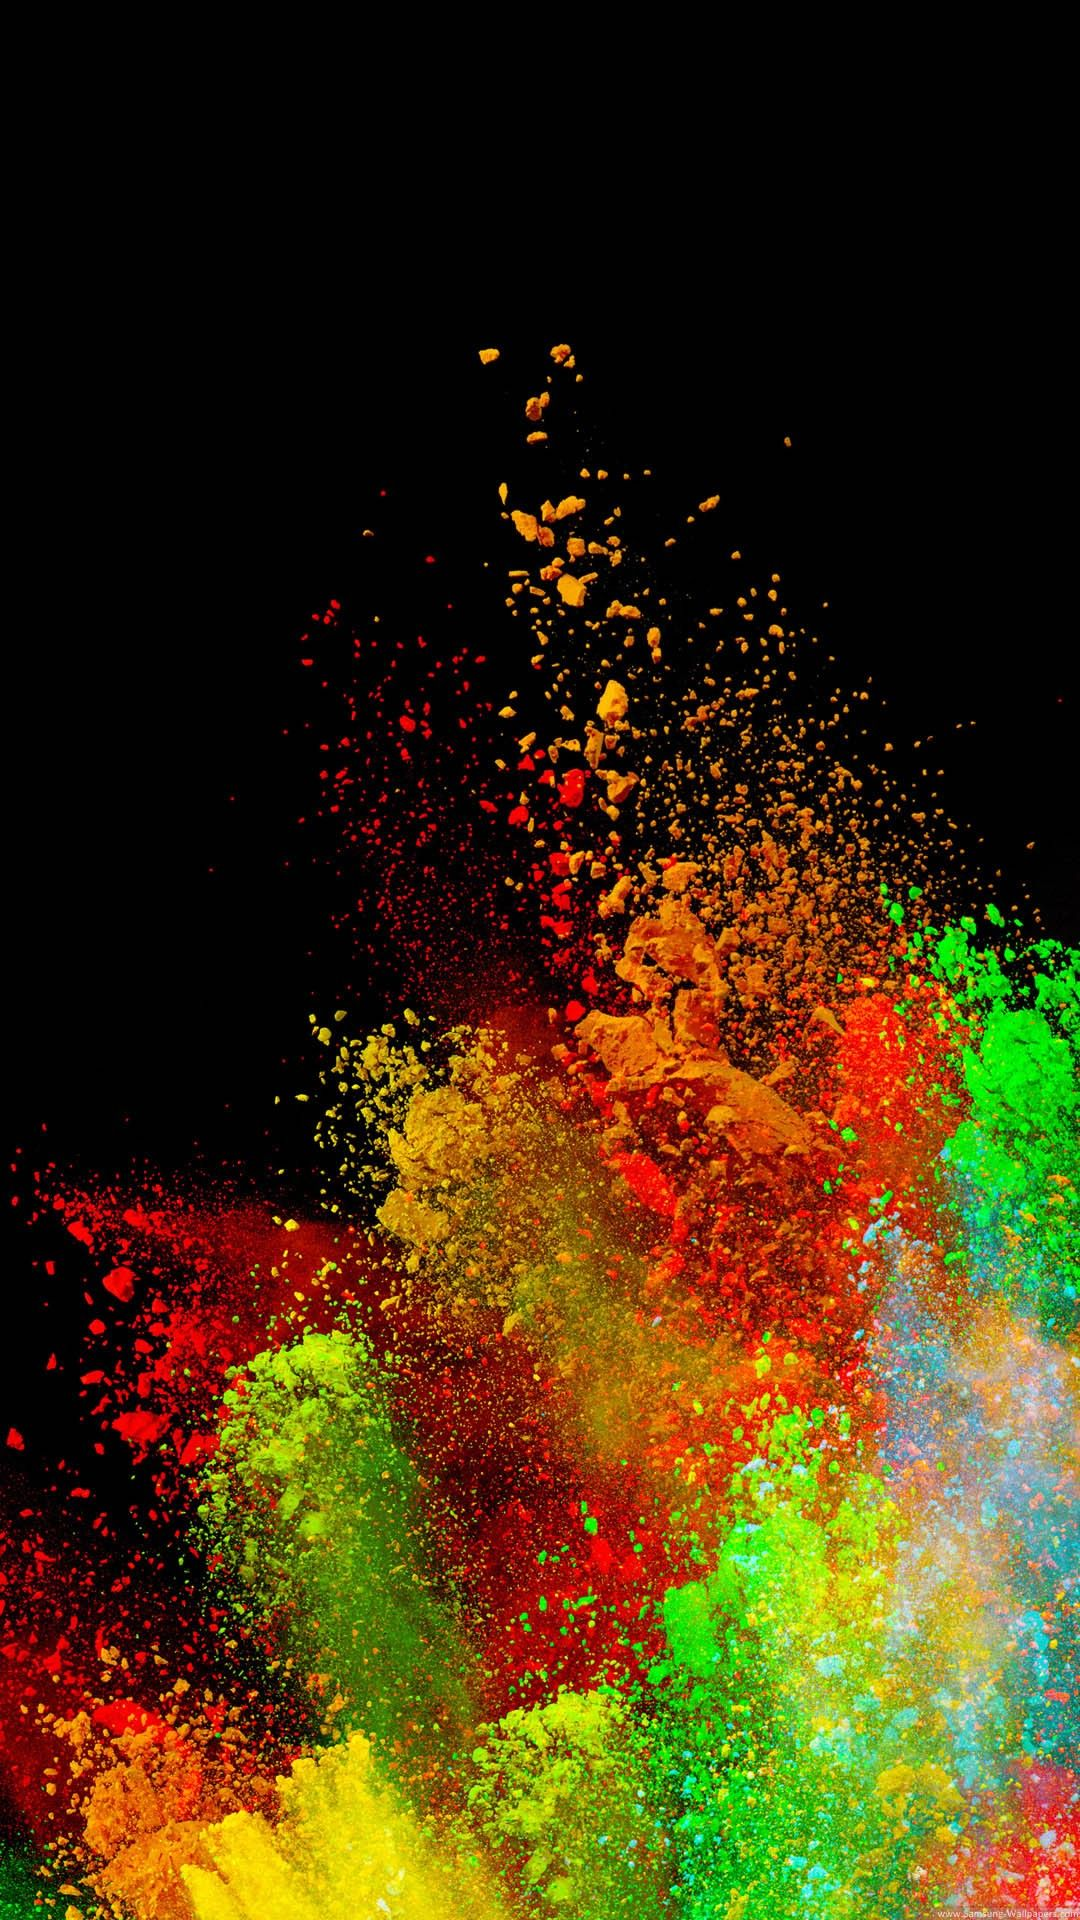 Color Splash Wallpaper Abstract iphone wallpaper